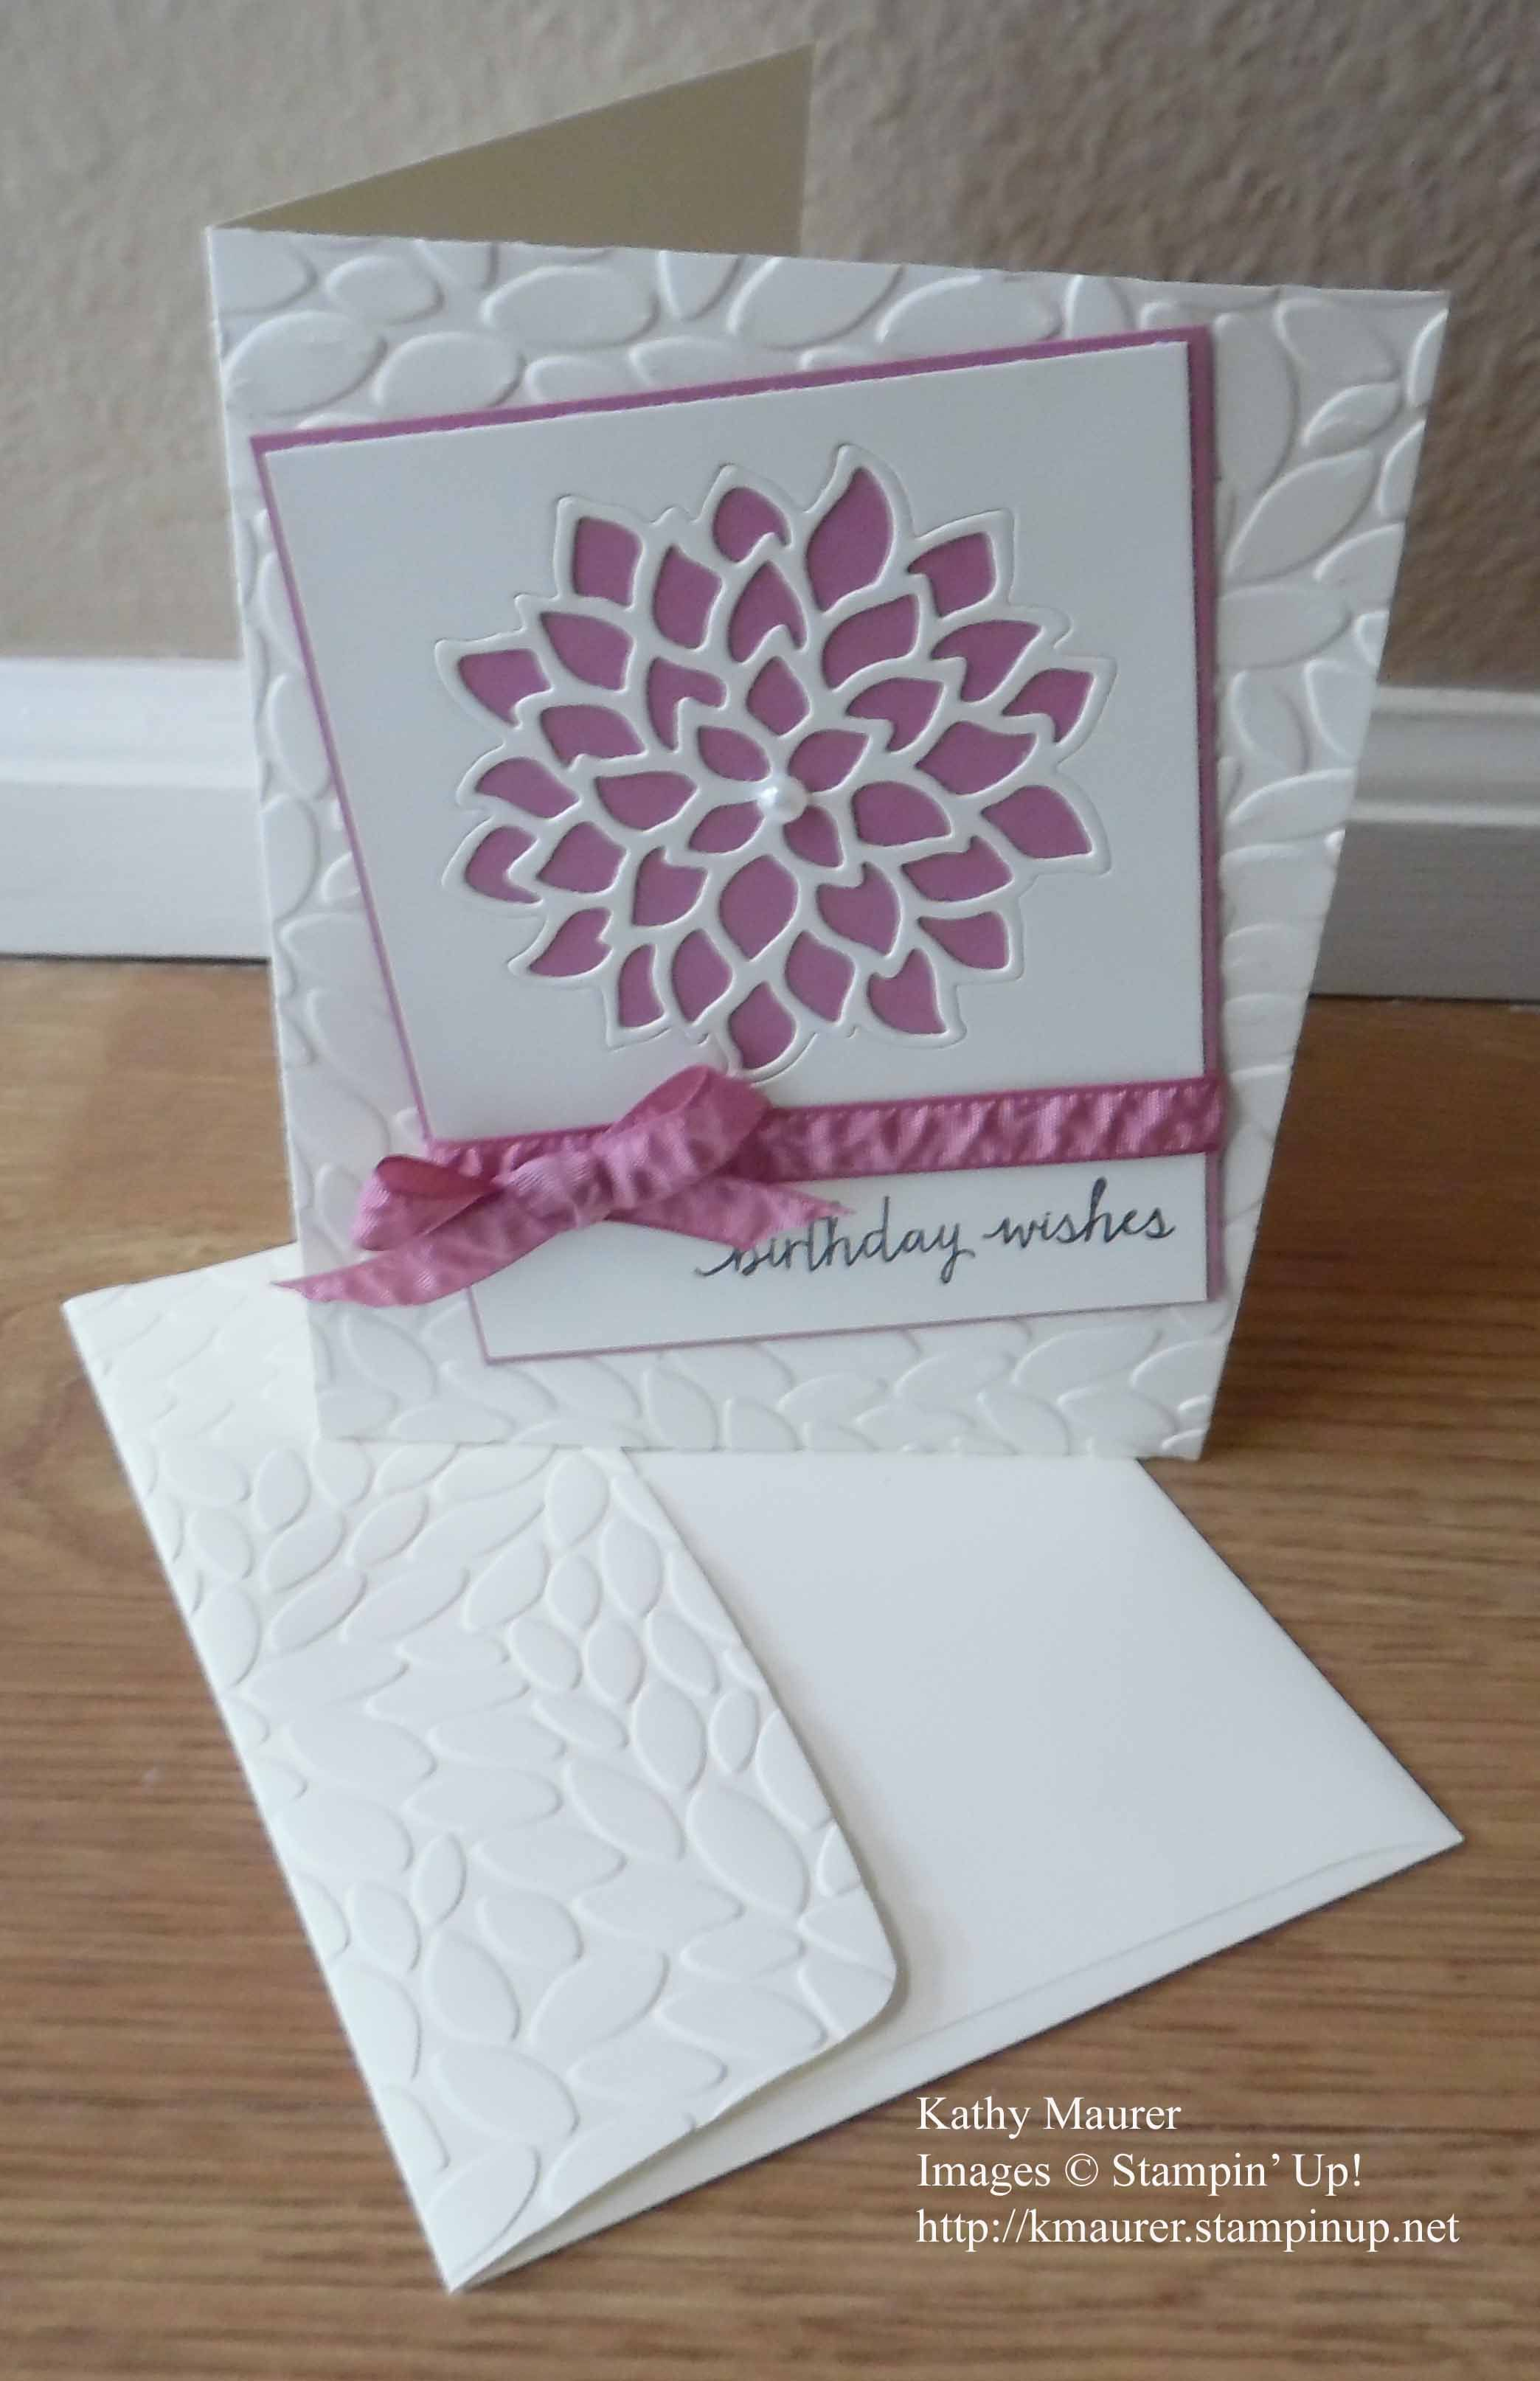 Stampin/'Up New Regals Collection Embossed Fashionable Heart Die Cuts 50